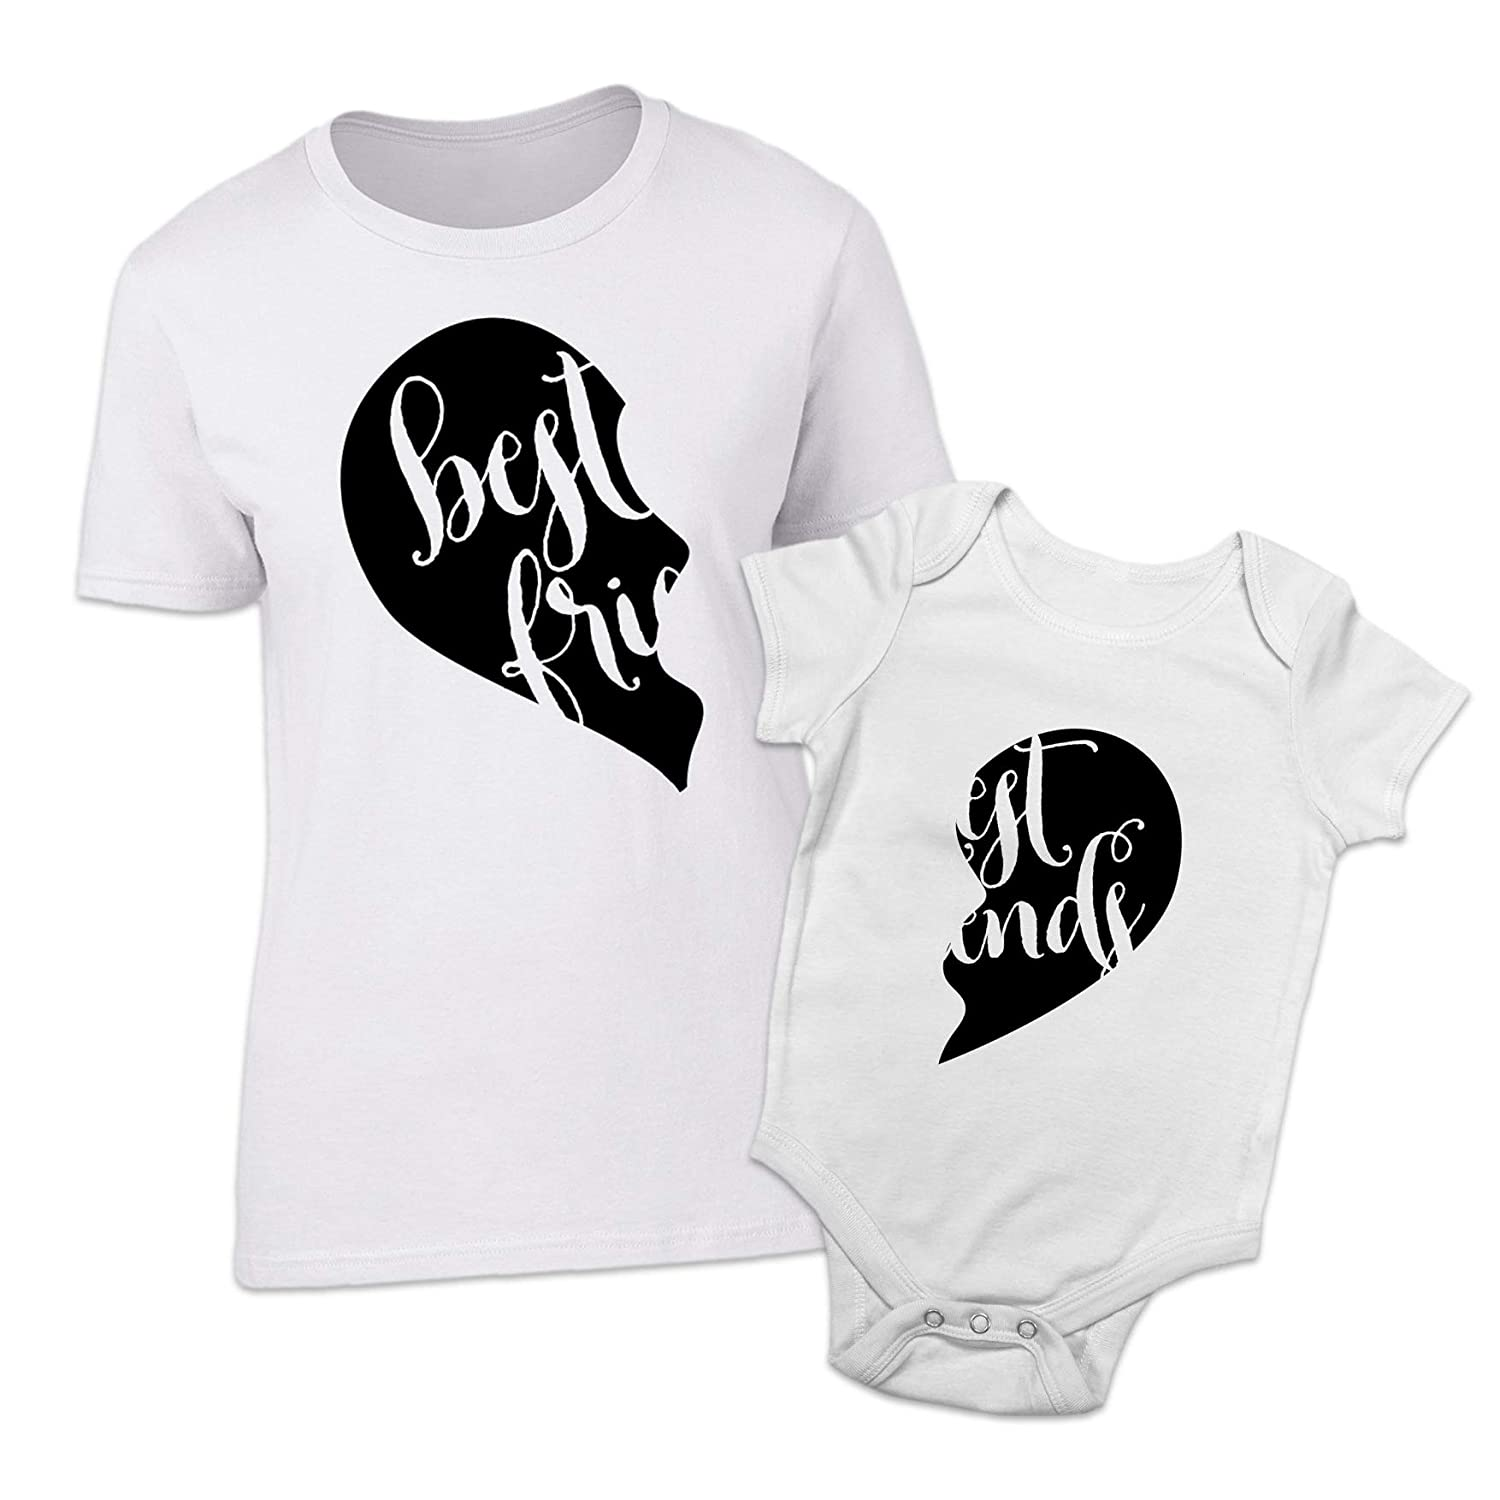 Shopagift Bestest Friends Mother and Baby Matching Outfits